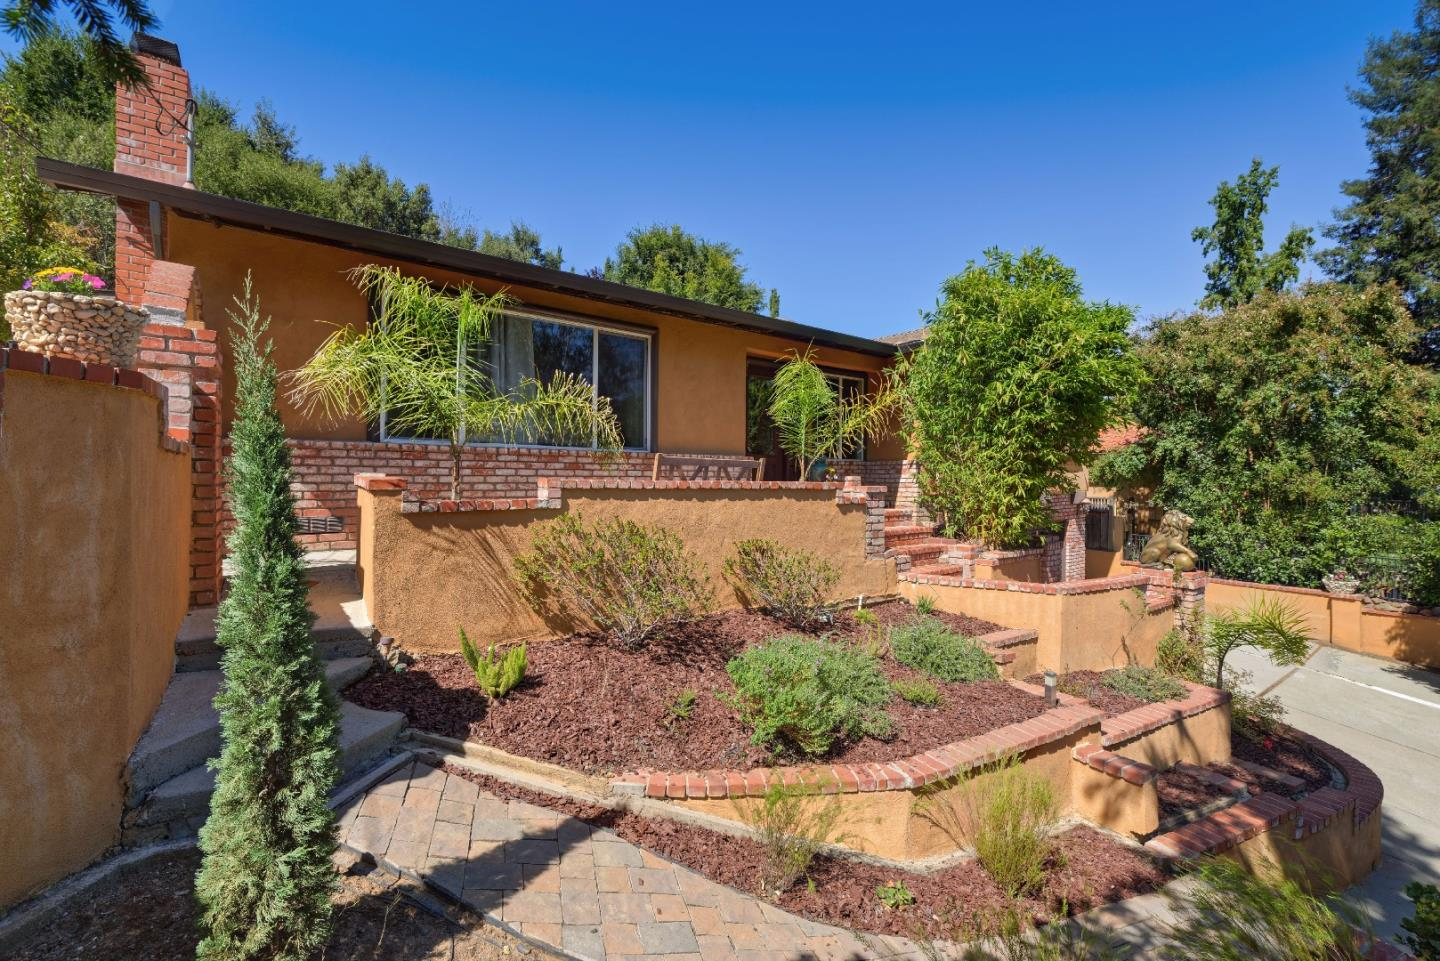 Single Family Home for Sale at 15011 Winchester Boulevard 15011 Winchester Boulevard Monte Sereno, California 95030 United States